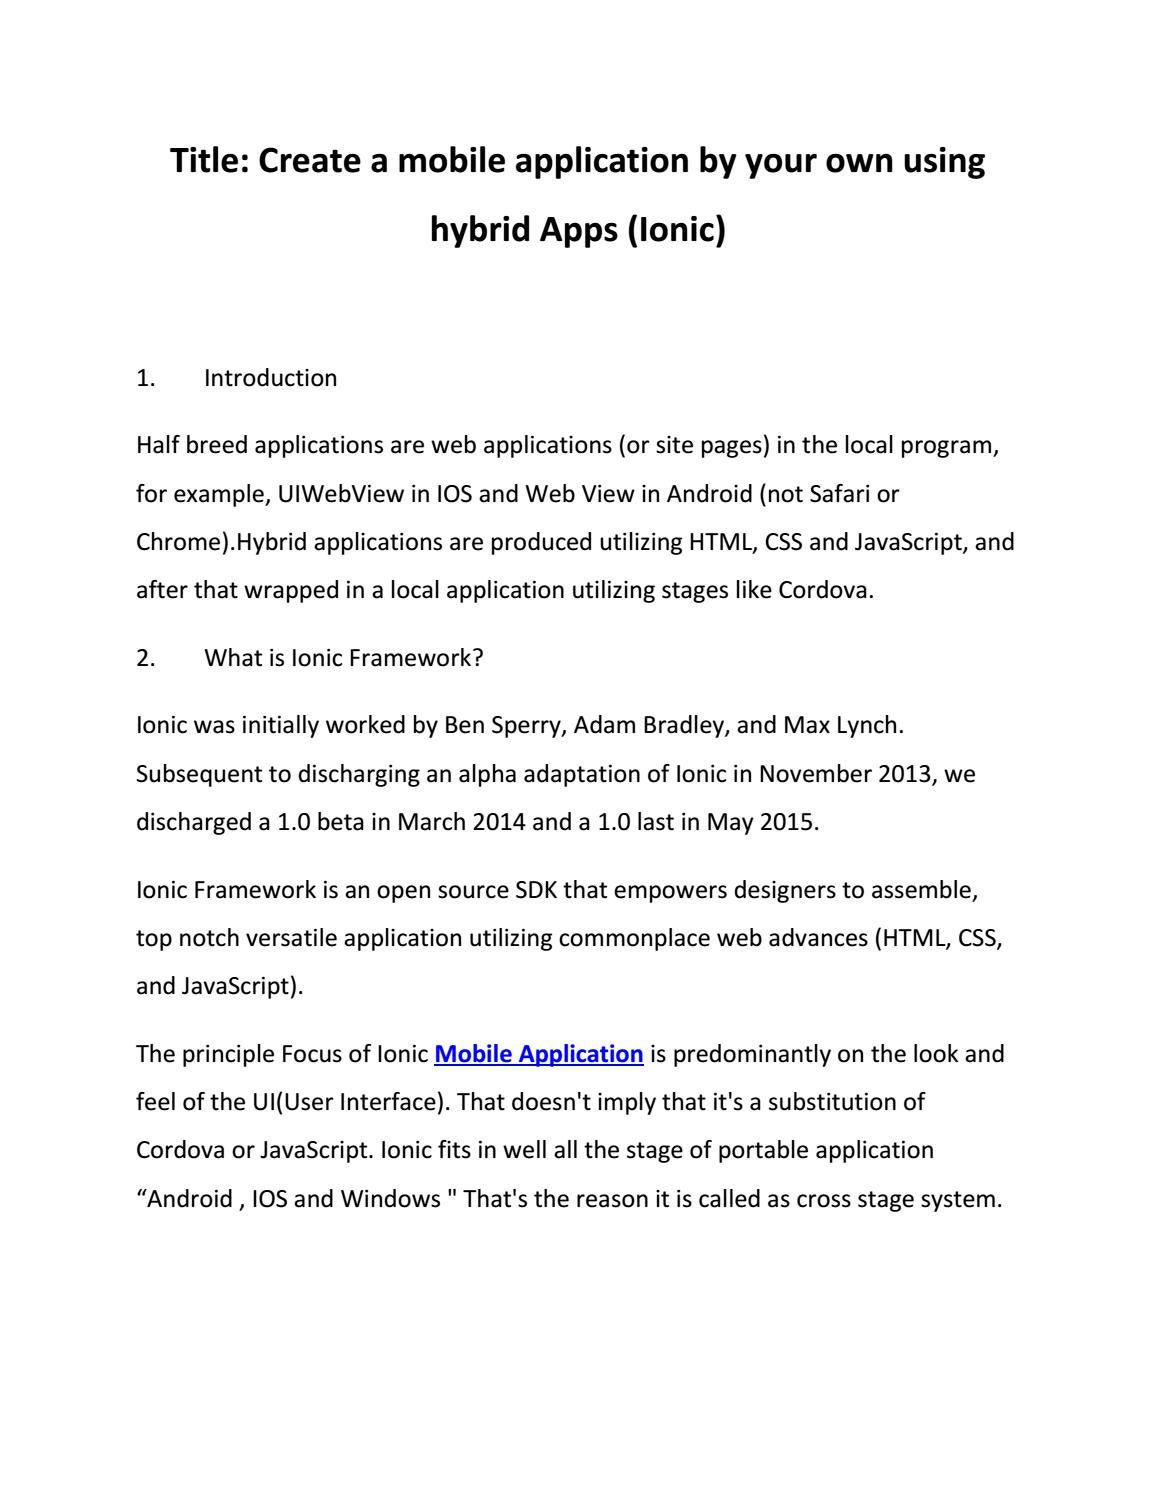 Create a mobile application by your own using hybrid Apps (Ionic) by